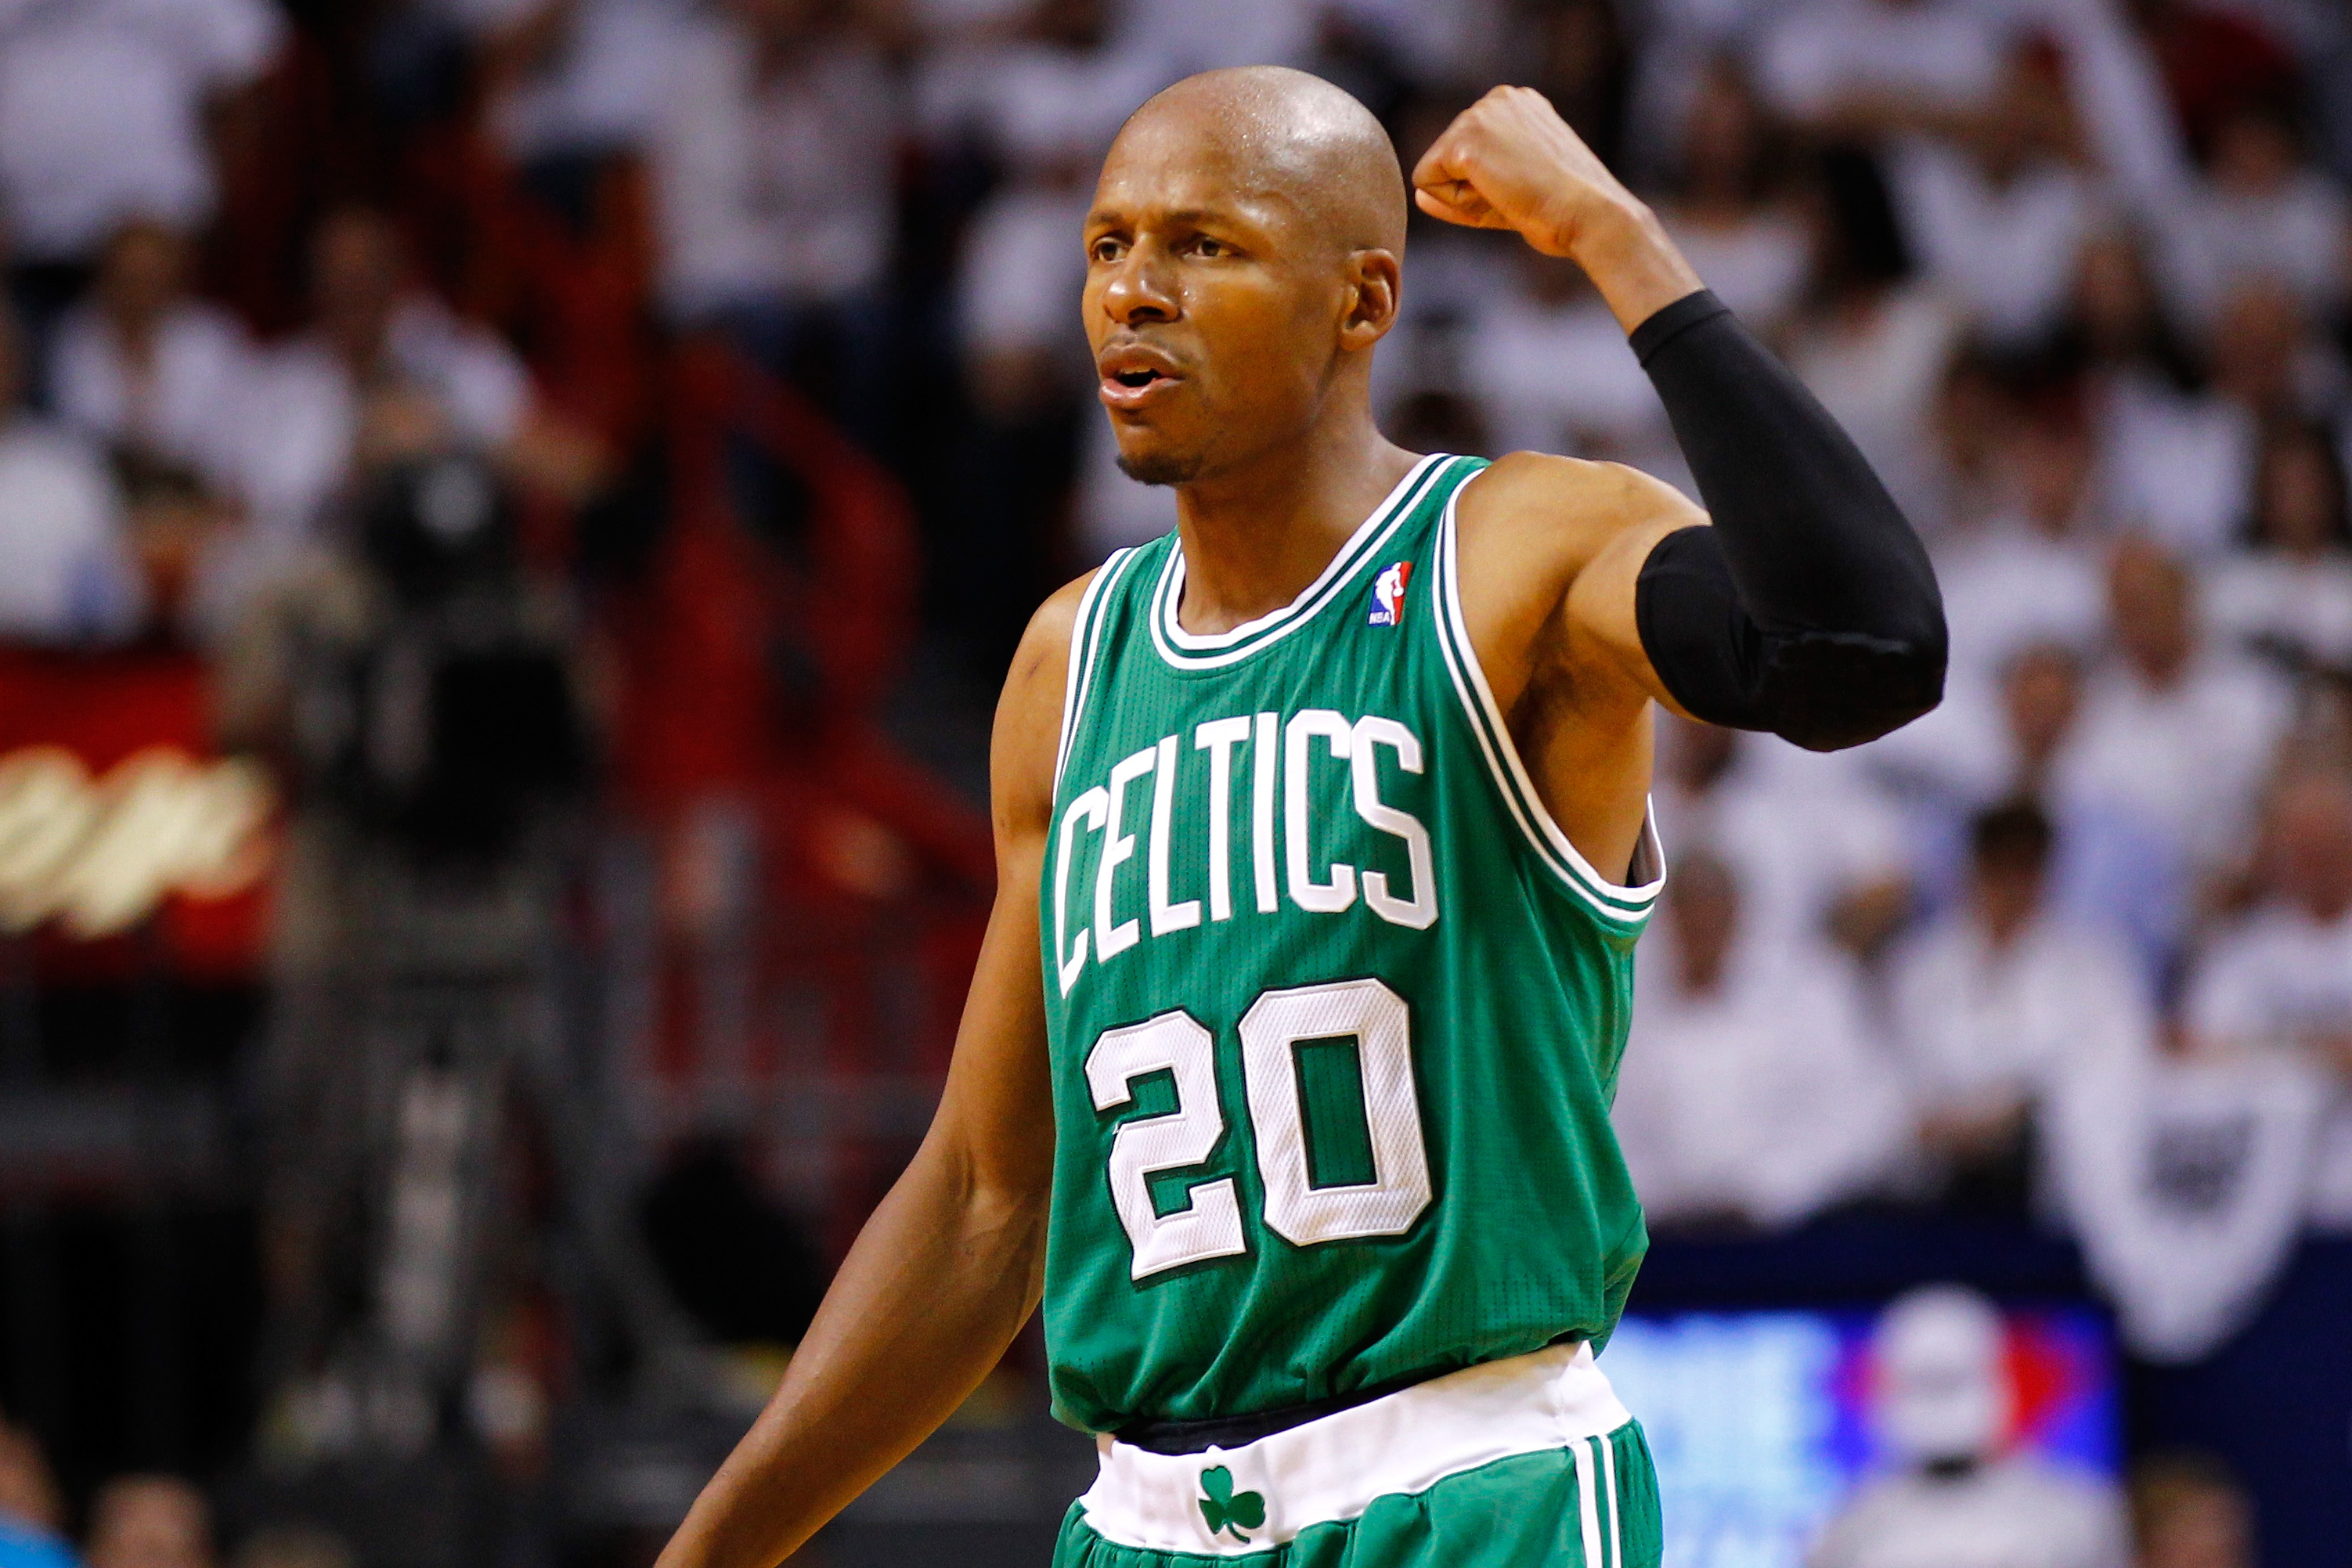 Ray Allen will become a free agent after spending the past five seasons with the Celtics. (Getty Images)